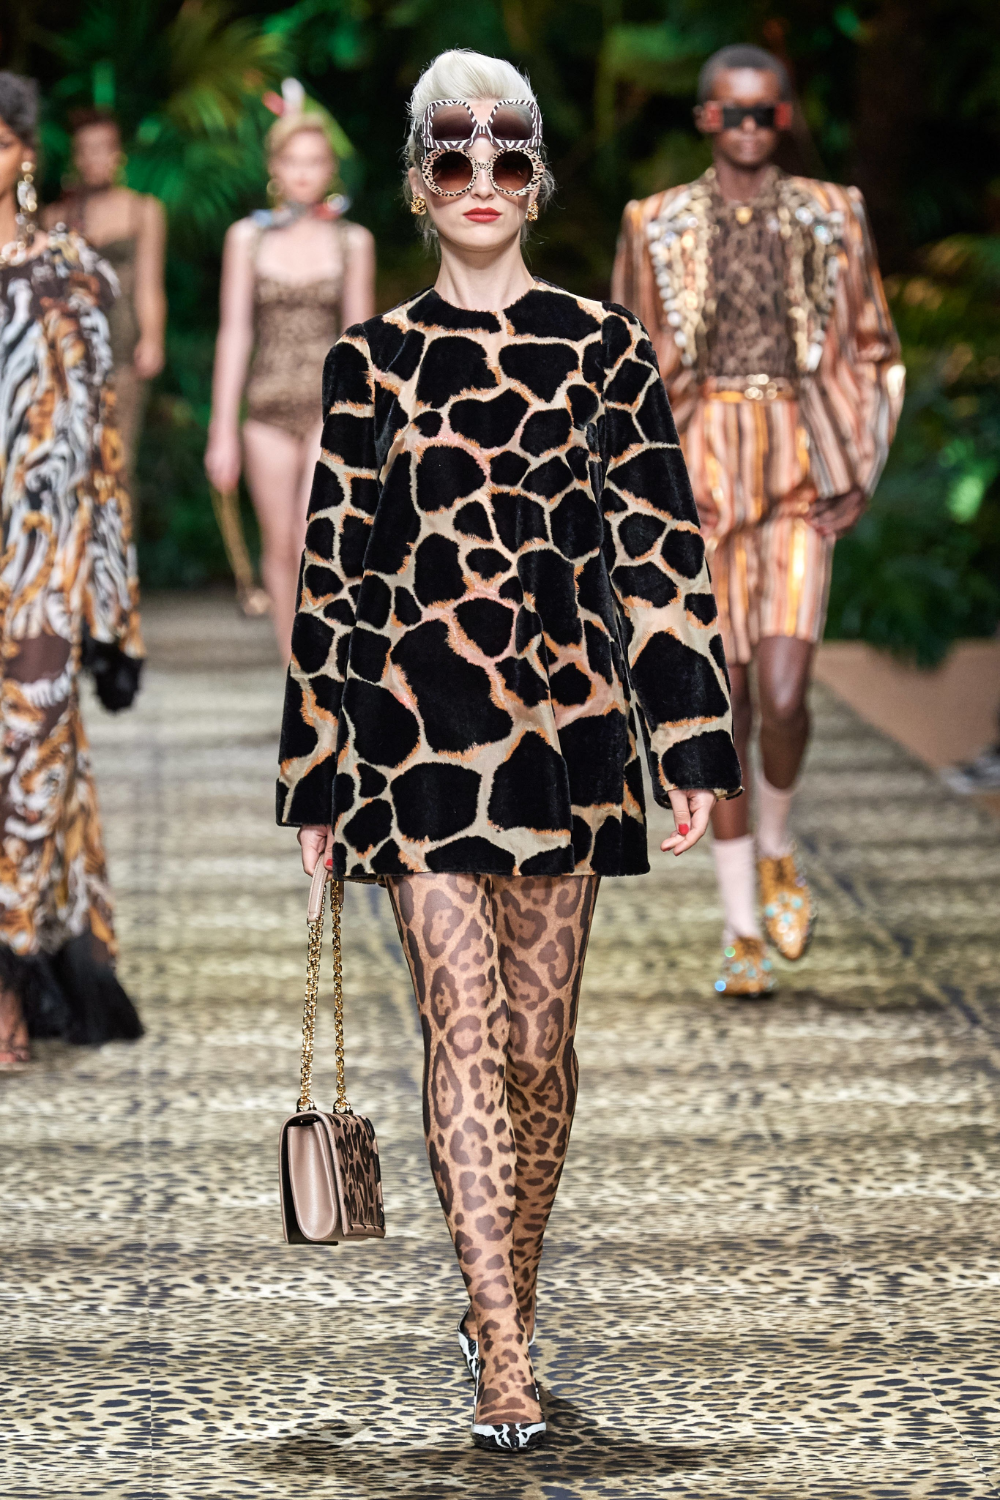 Dolce & Gabbana Spring 2020 Ready-to-Wear Fashion Show -  Dolce & Gabbana Spring 2020 Ready-to-Wear Collection – Vogue  - #Dolce #Fashion #Gabbana #ReadytoWear #RunwayFashion2020 #RunwayFashionaesthetic #RunwayFashionalexandermcqueen #RunwayFashioncasual #RunwayFashionchanel #RunwayFashiondior #RunwayFashiondolce&gabbana #RunwayFashionversace #RunwayFashionwomen #Show #Spring